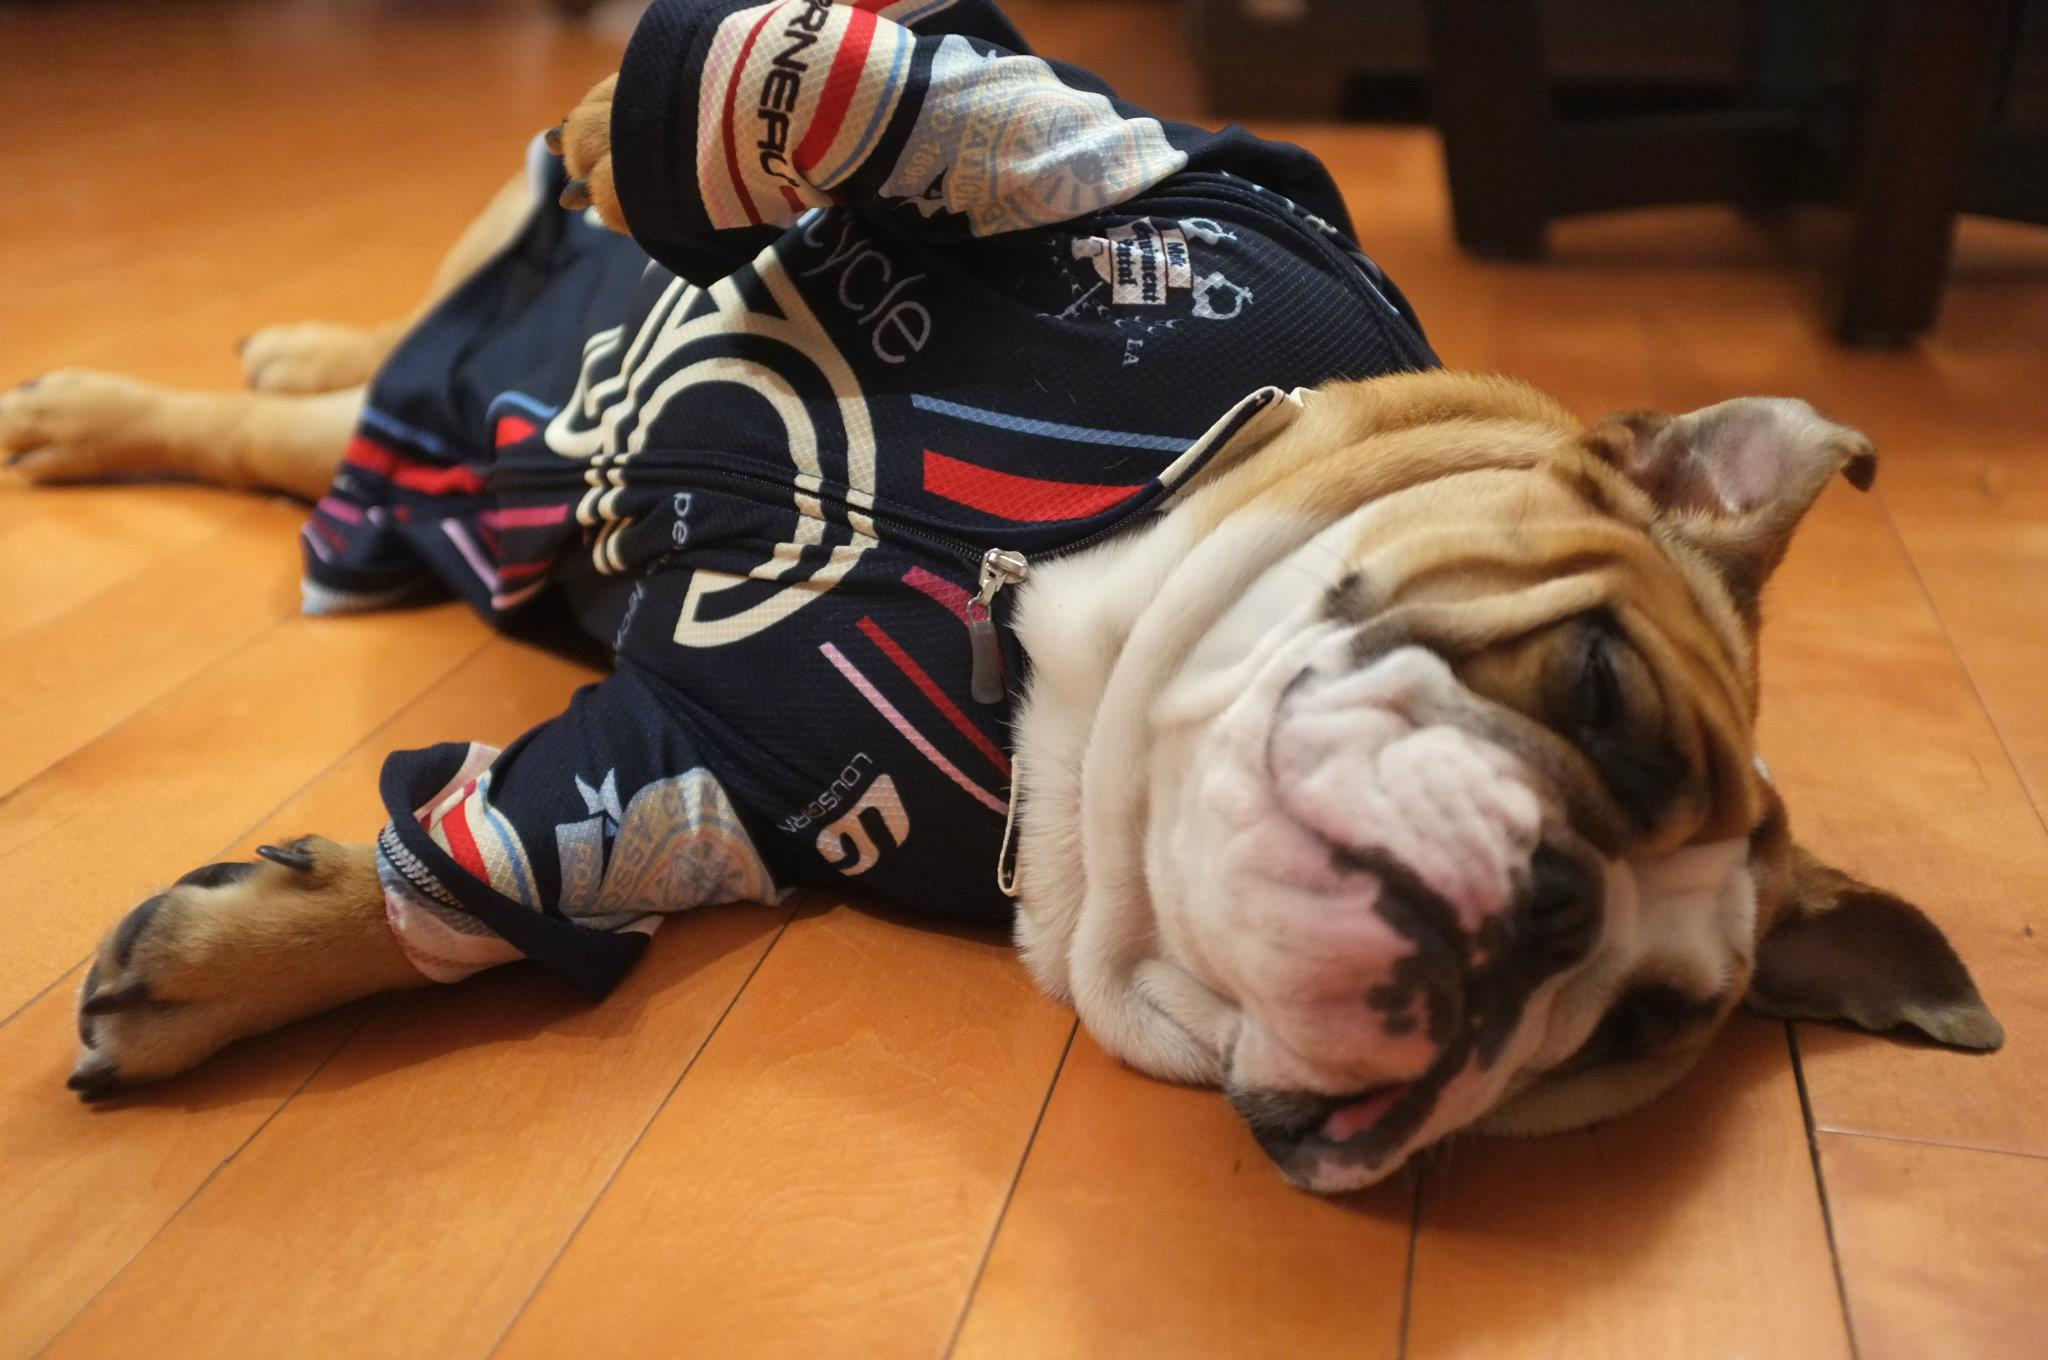 A much younger Winnie the Bulldog, our official team mascot, models the first generation of our team kit featuring the vertical stripes that would dominate our design ethos for the first five seasons of the team's evolution.